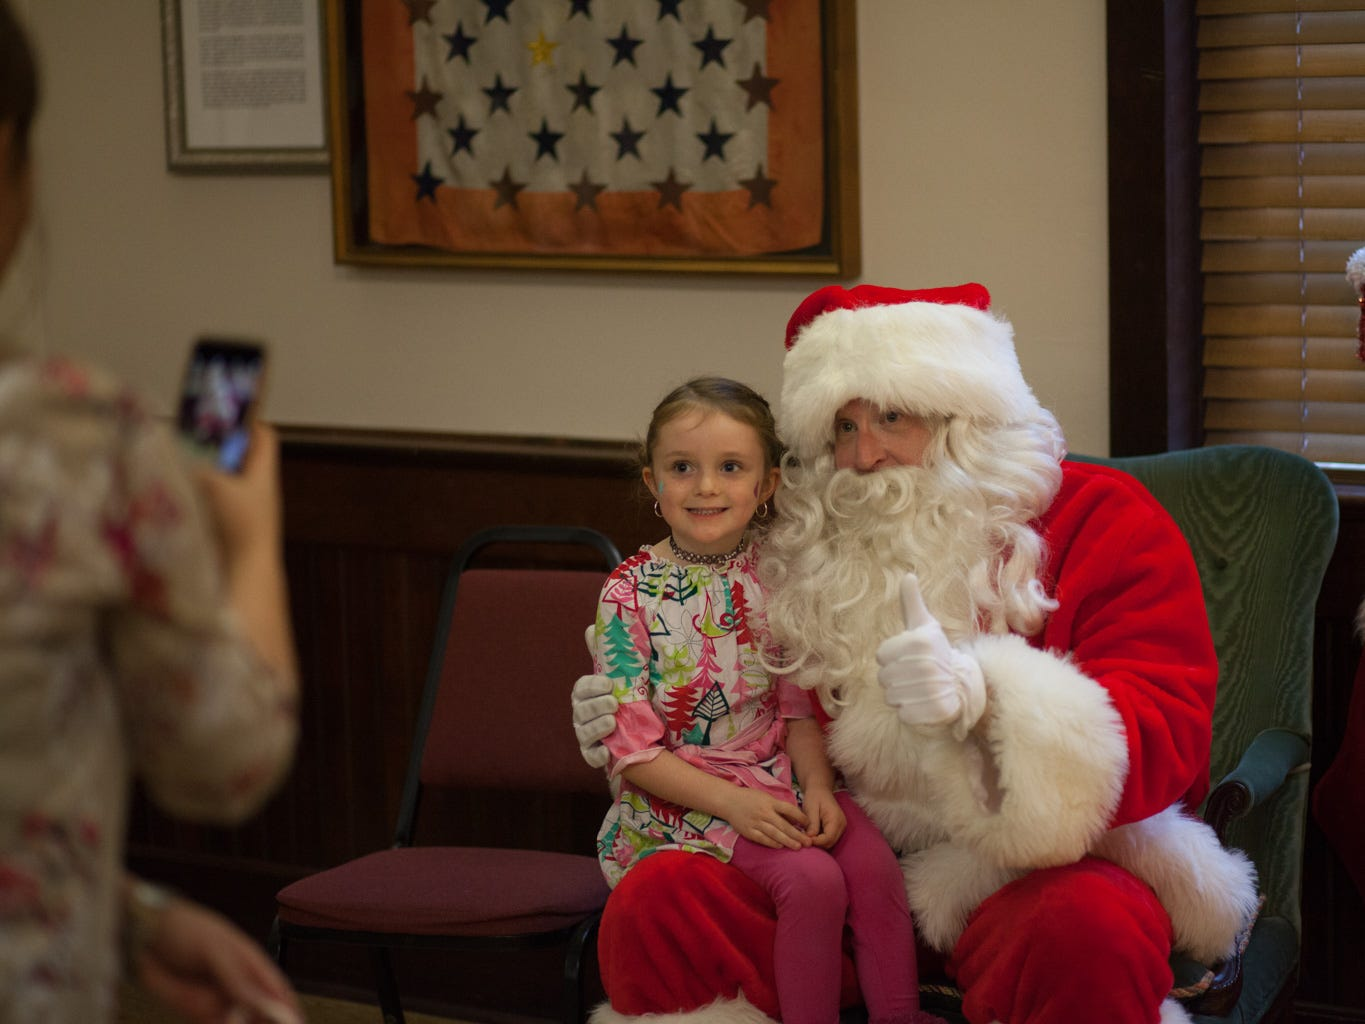 Santa Claus stopped by the Trinity Episcopal Church on Saturday to visit with Clarksville children, Dec. 1, 2018, in Clarksville, Tenn.